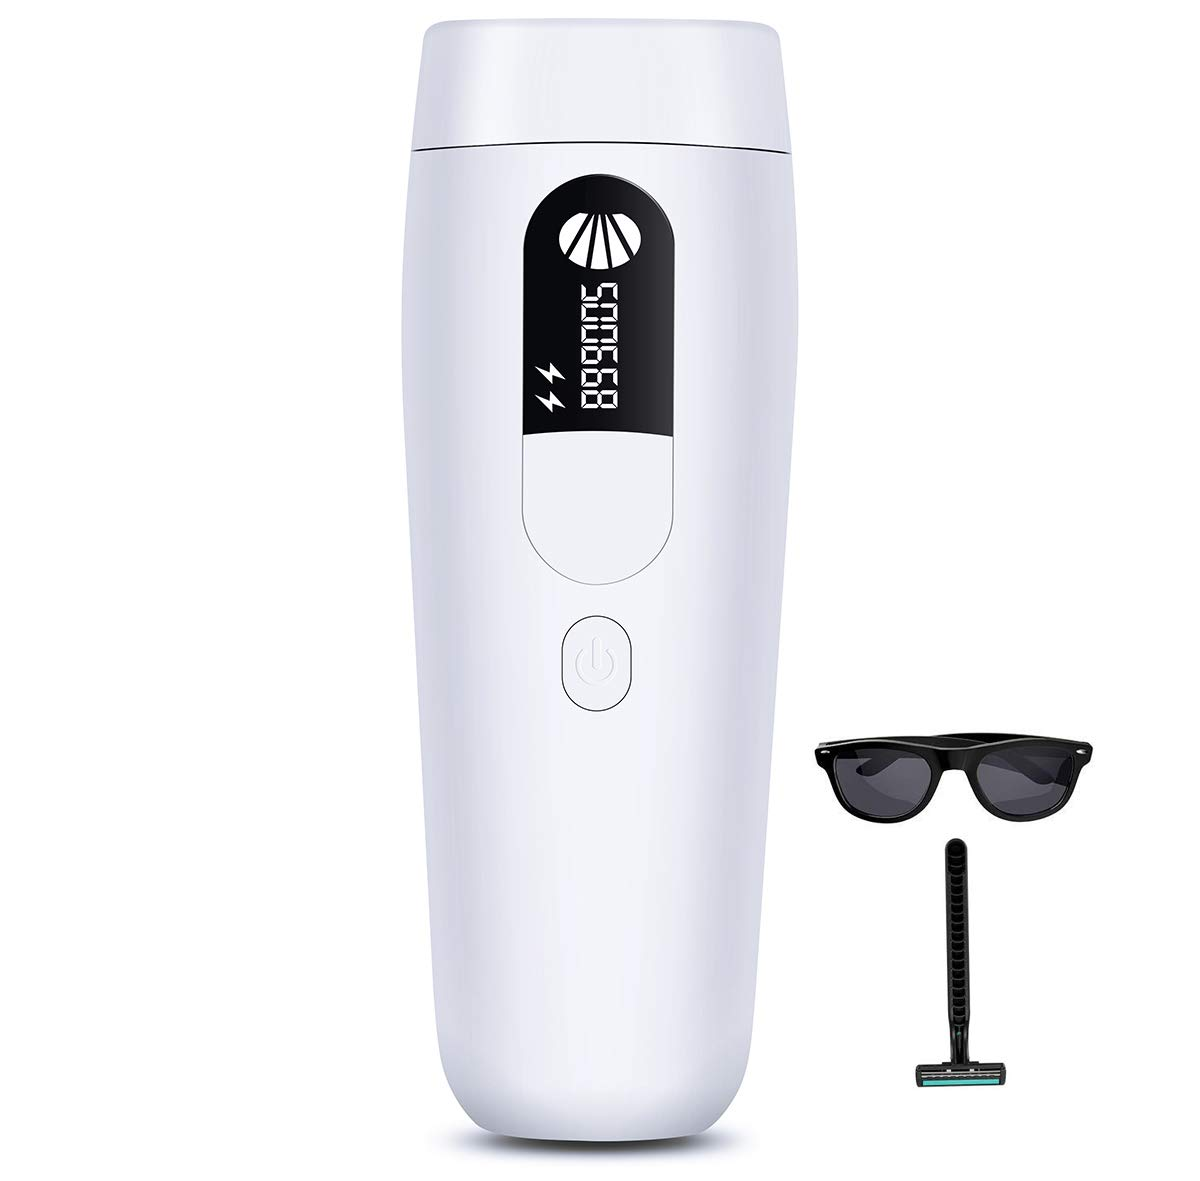 IPL Permanent Hair Removal System for Women&Men, 500,000 Flashes Professional Painless Laser Hair Remover Device for Home Use, Epilator for Facial Body or Bikini by Cinseer